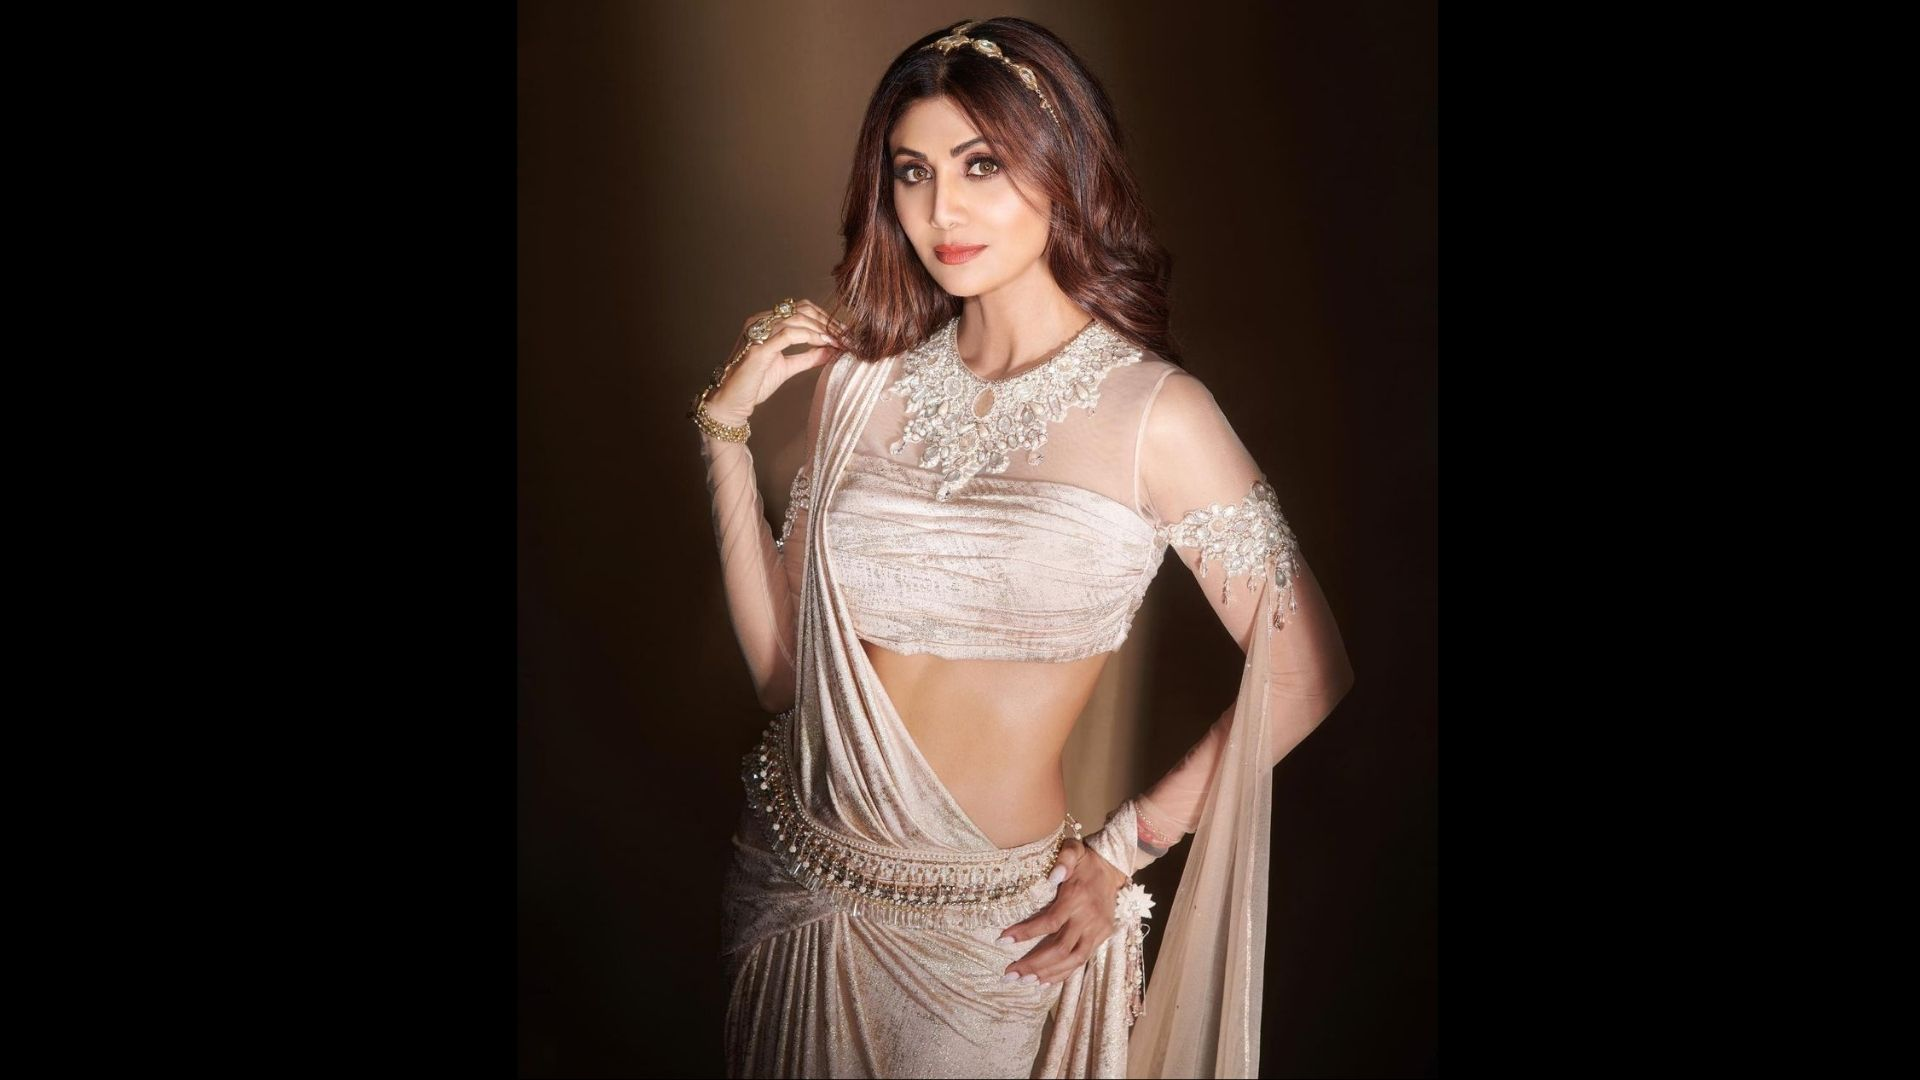 Super Dancer 4 Finale: Shilpa Shetty Looks No Less Than A Goddess In A White Saree; Its Price Can Sponsor You A Luxurious Bangkok Trip